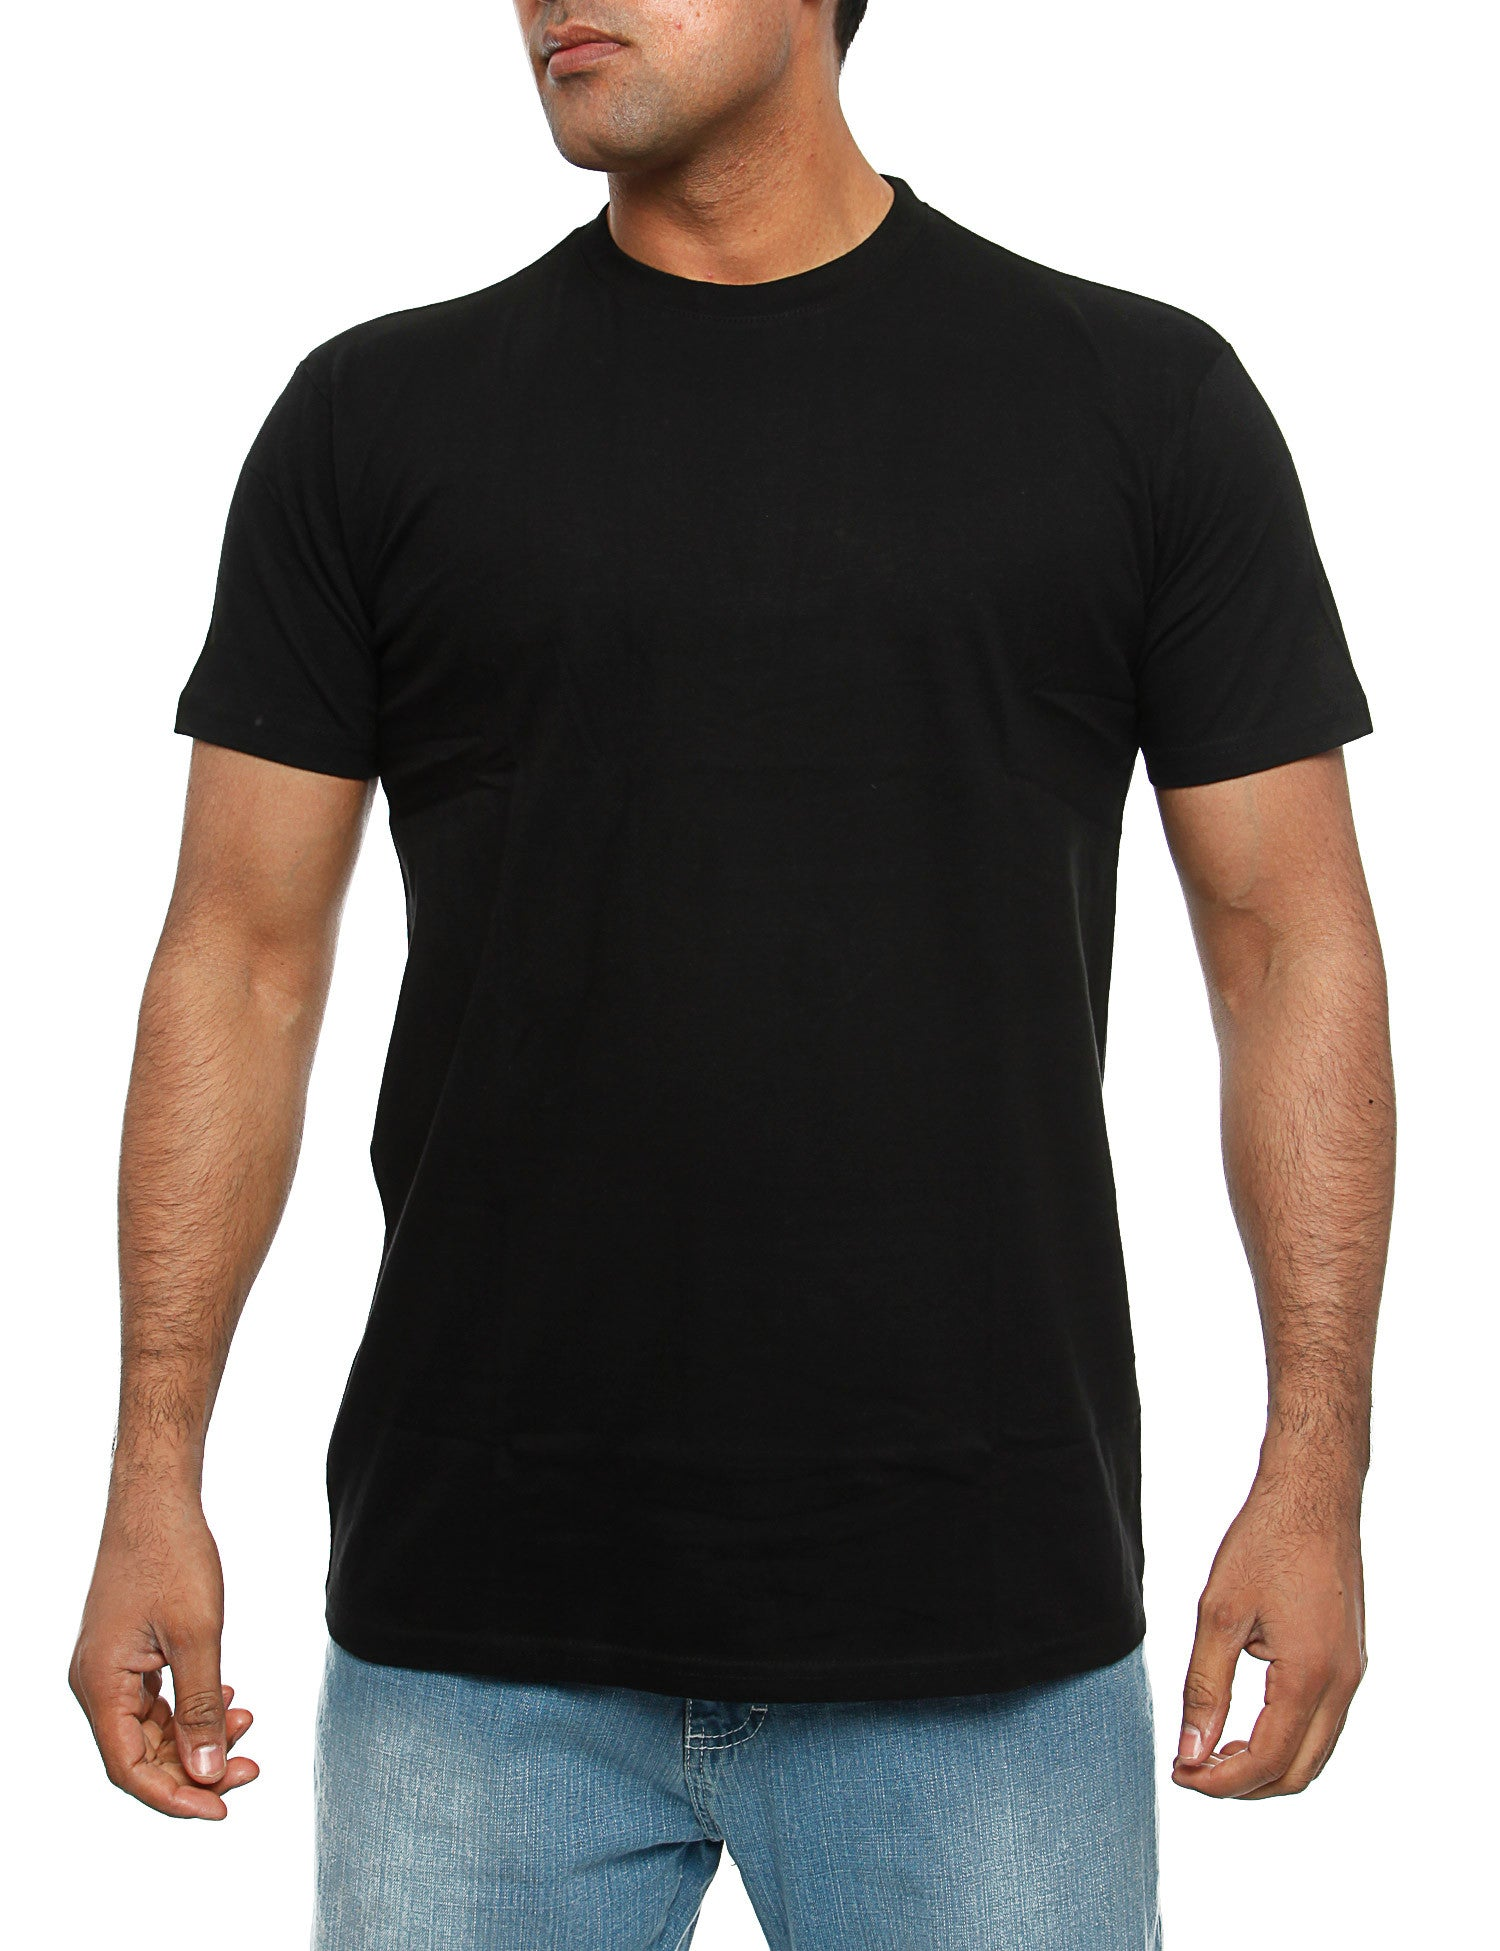 Escobar Basic Blank Tee  Black